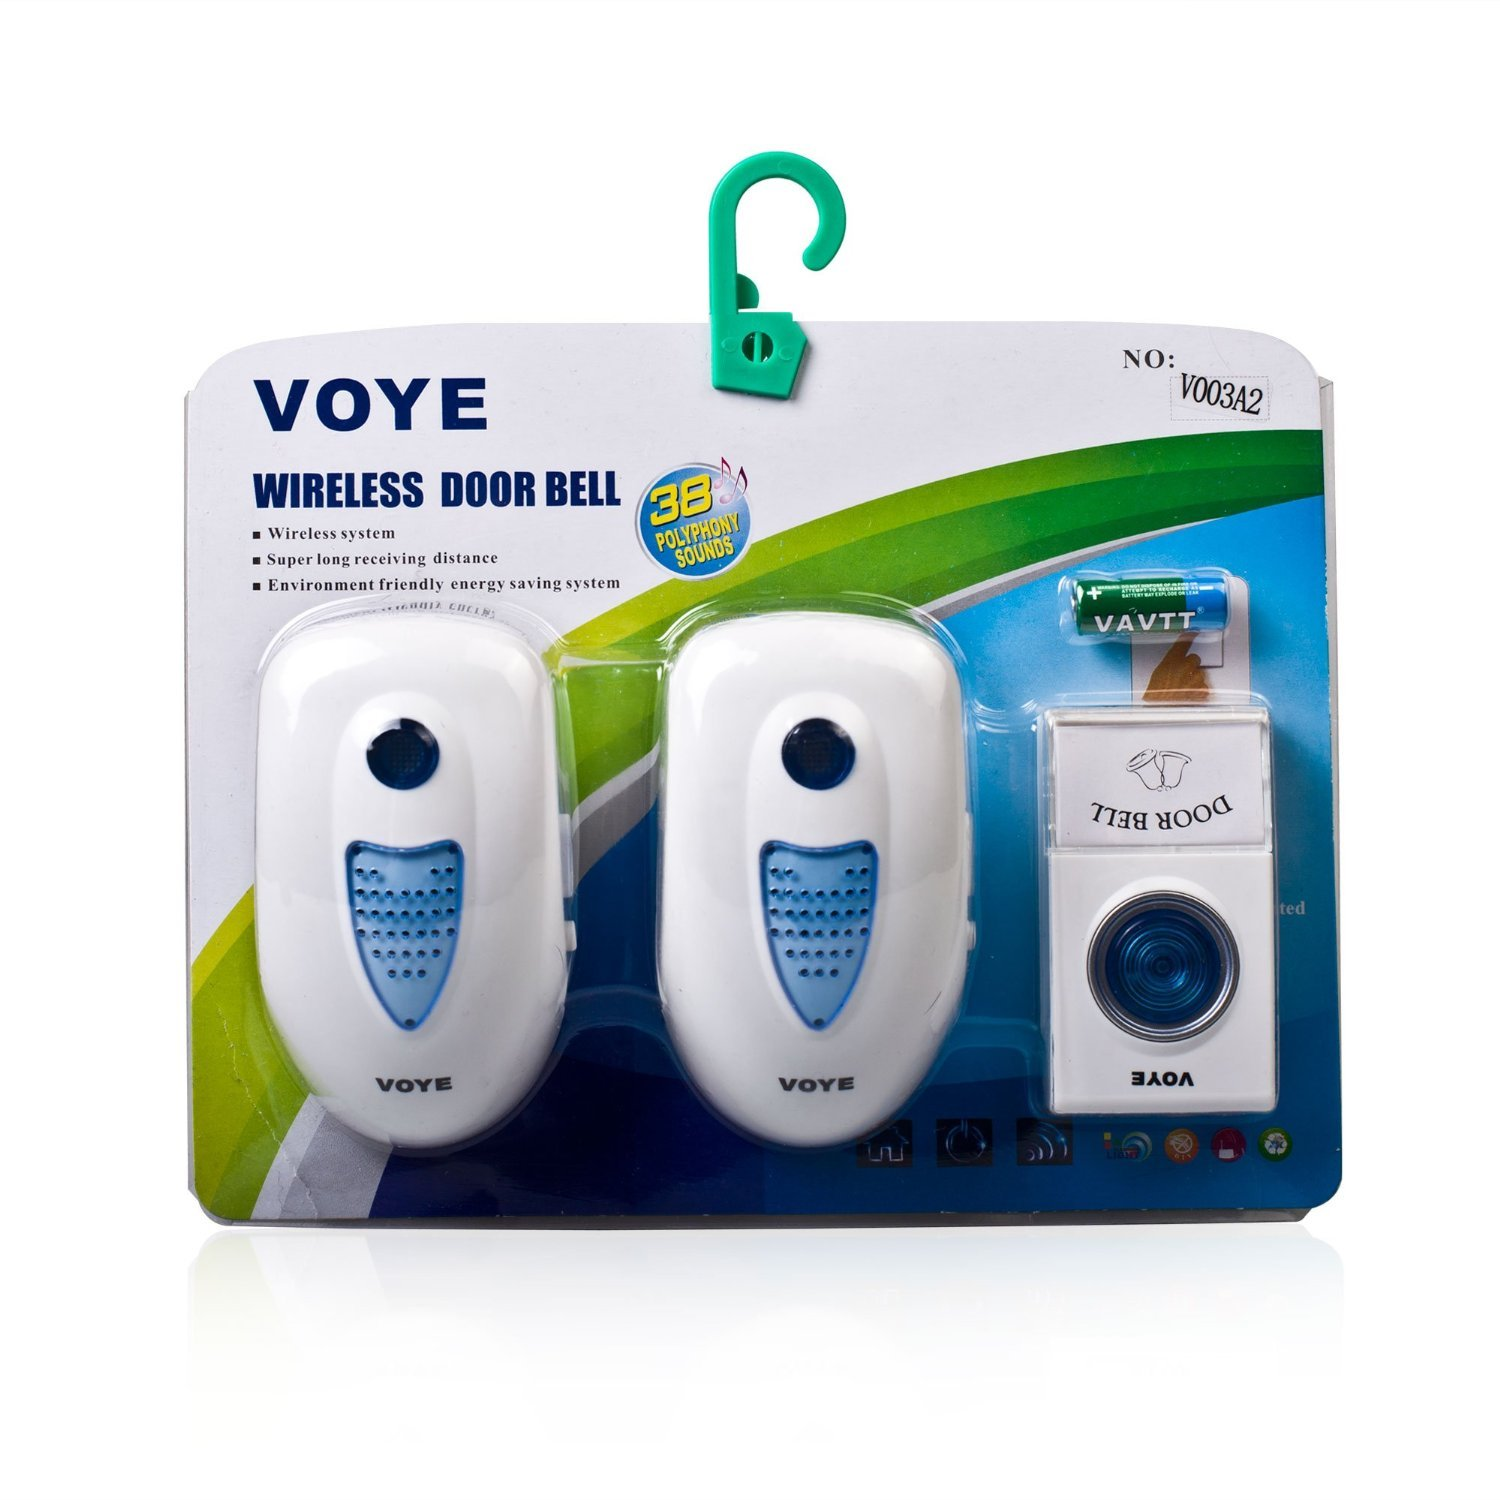 Voye 003A2 2 Plug In Wireless Digital Doorbell with Battery White